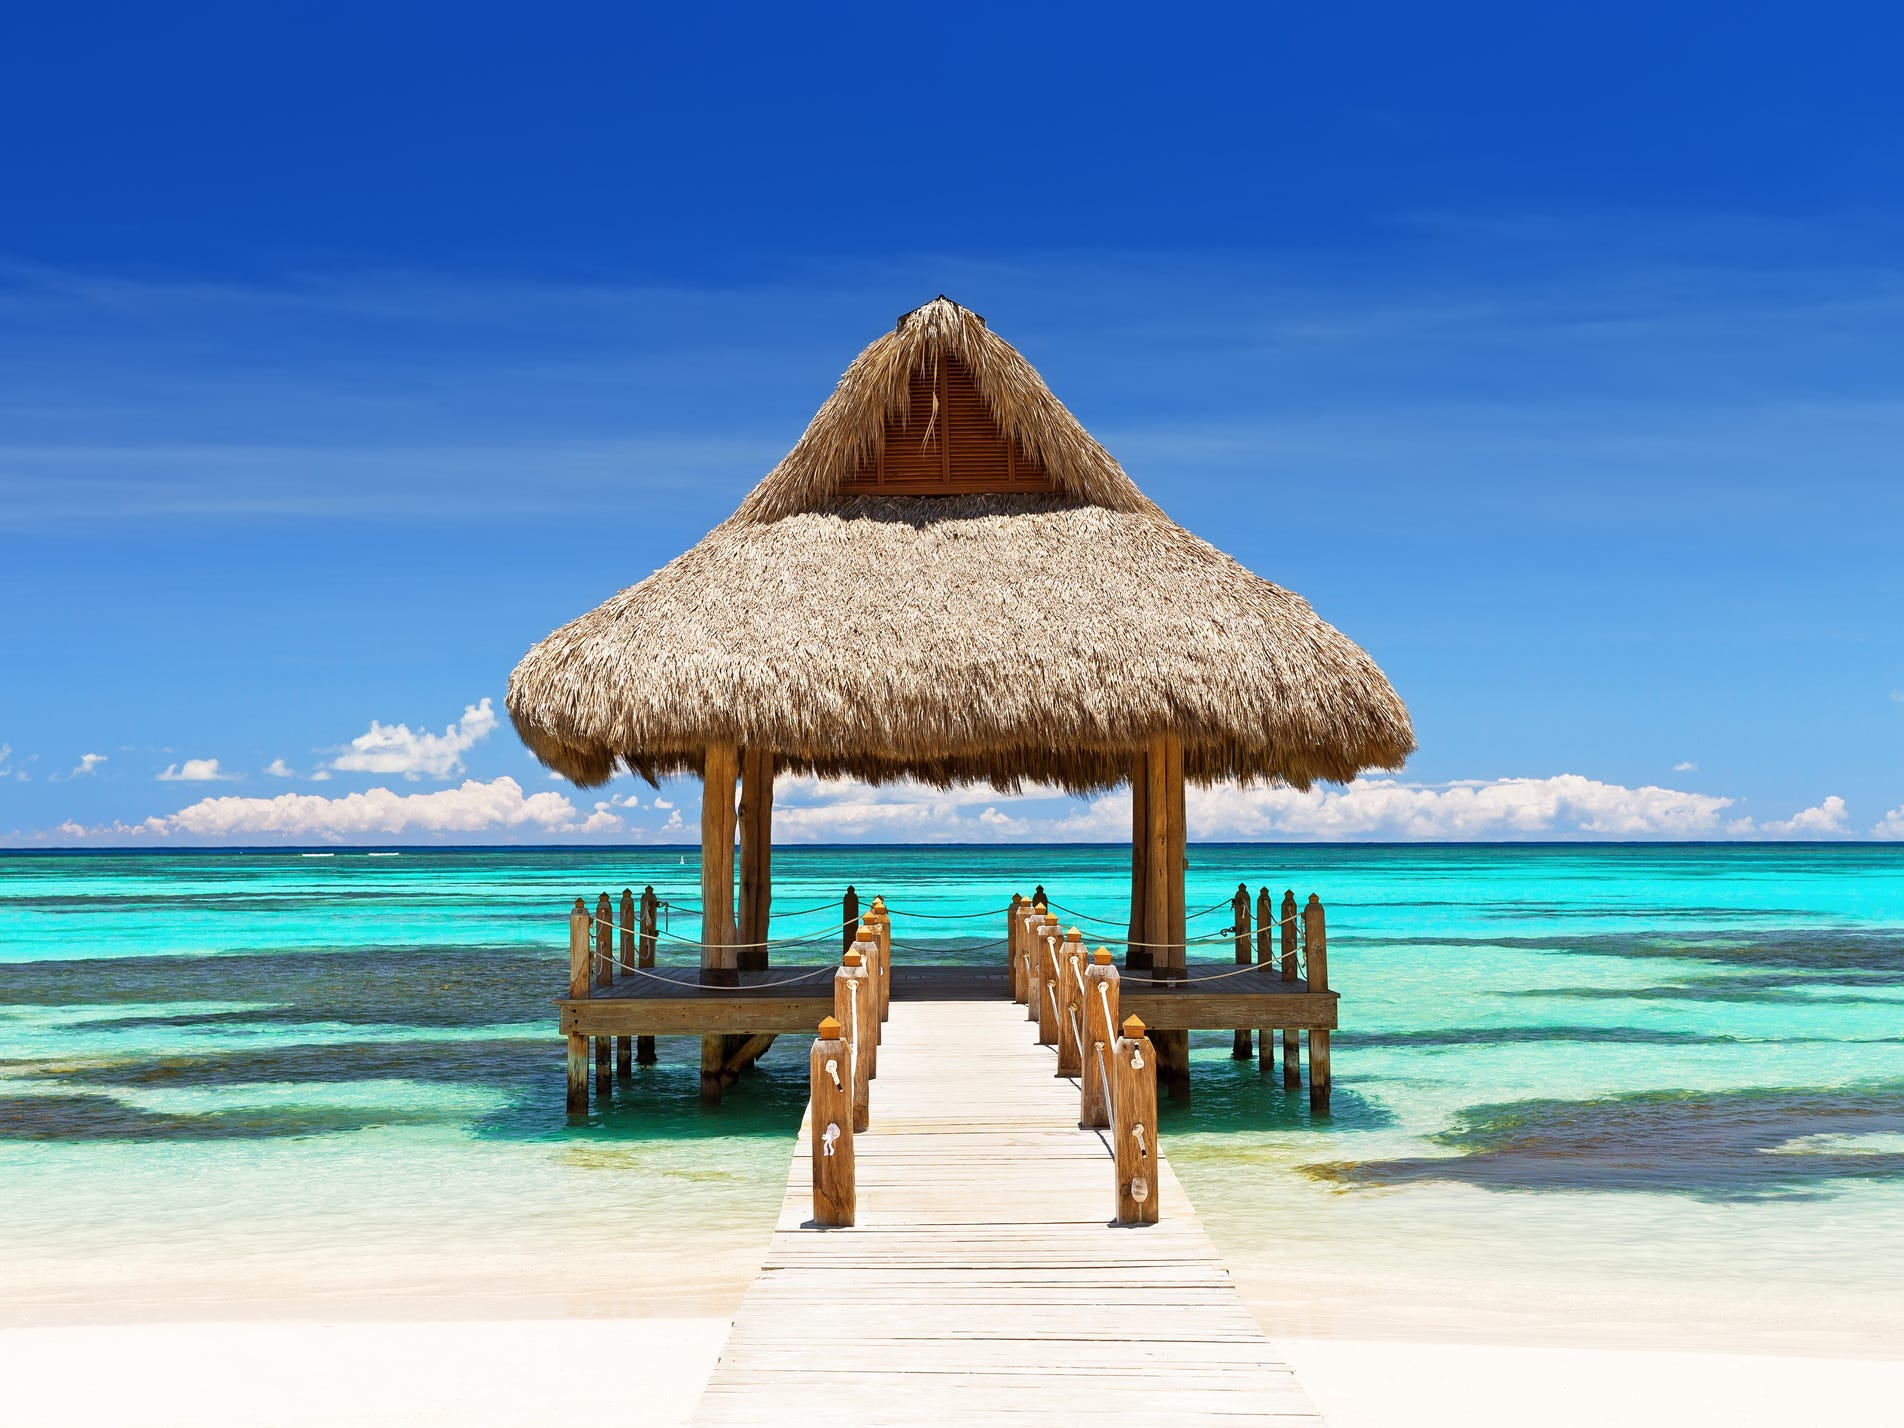 AAA has named the top 10 destinations for summer 2019, based on its bookings for trips from June 1 through Aug. 15. At No. 10 on the list is Punta Cana in the Dominican Republic.